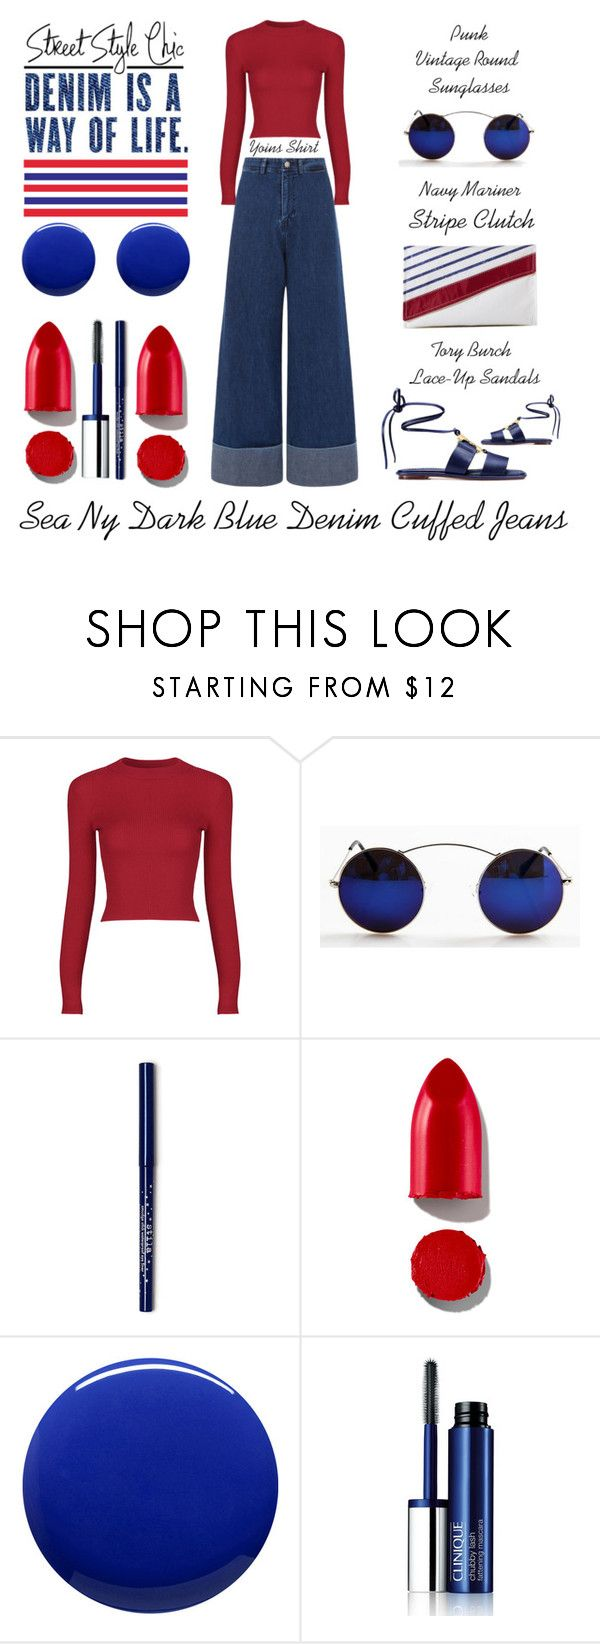 """Sea Ny Dark Blue Denim Cuffed Jeans"" by latoyacl ❤ liked on Polyvore featuring Sea, New York, Rodin, Lauren B. Beauty, Clinique and Tory Burch"